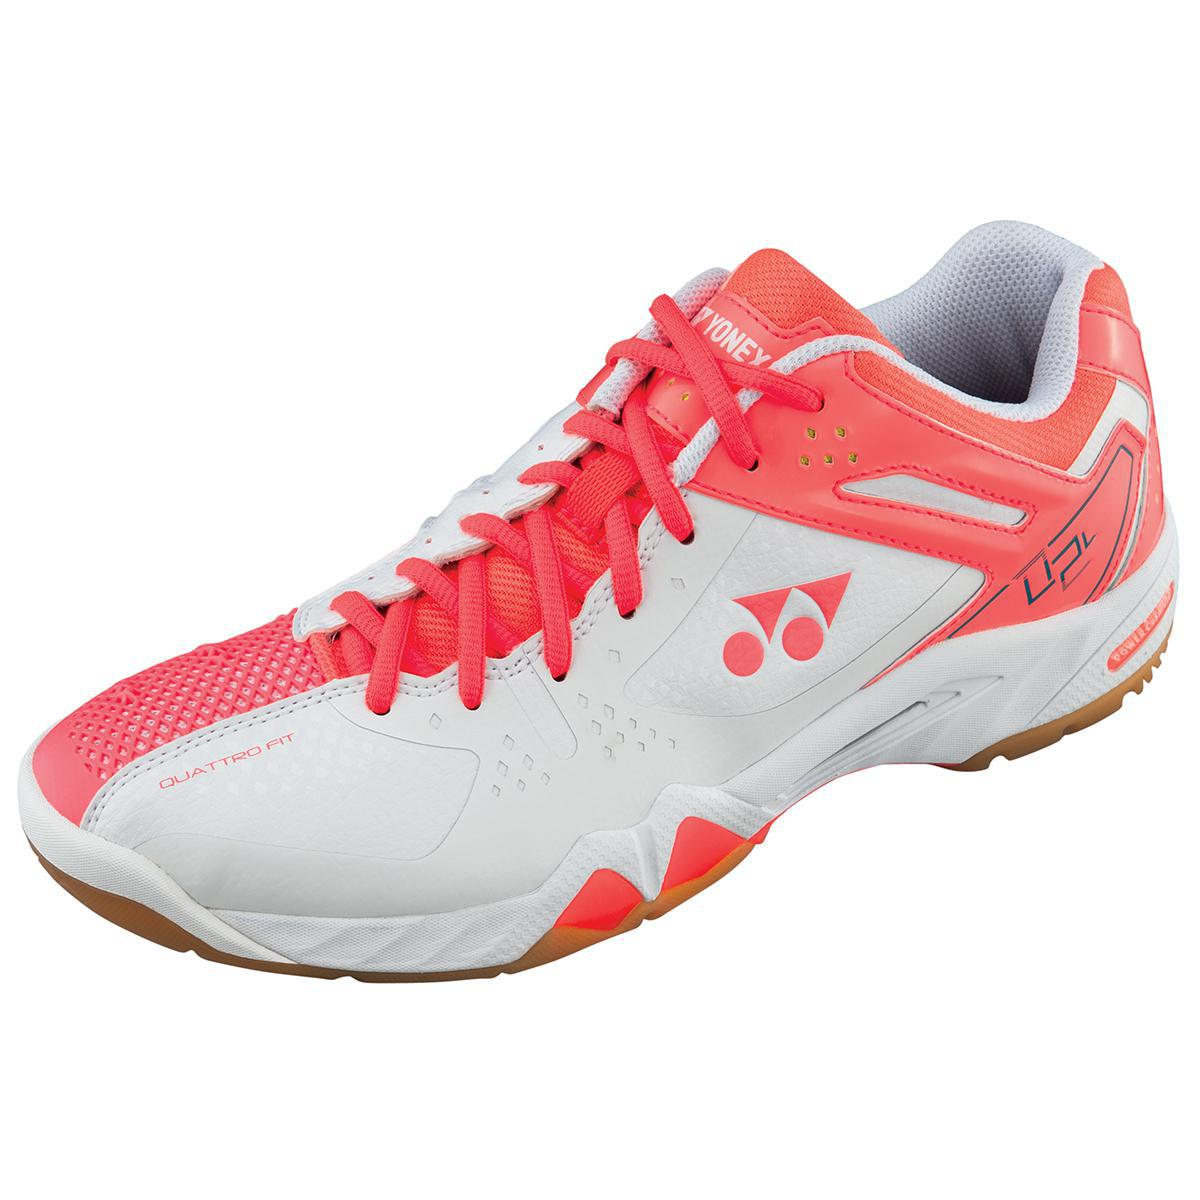 Awesome For Cheaper Prices Please Visit TG SPORTS  YONEX  Area Of The Shoe Hexagrip  For Agile And Stable Footwork, The Hexagrip Pattern Provides 3% More Grip And Is 20% Lighter Than Standard Sole Material US 7  UK 65  25cm  EURO